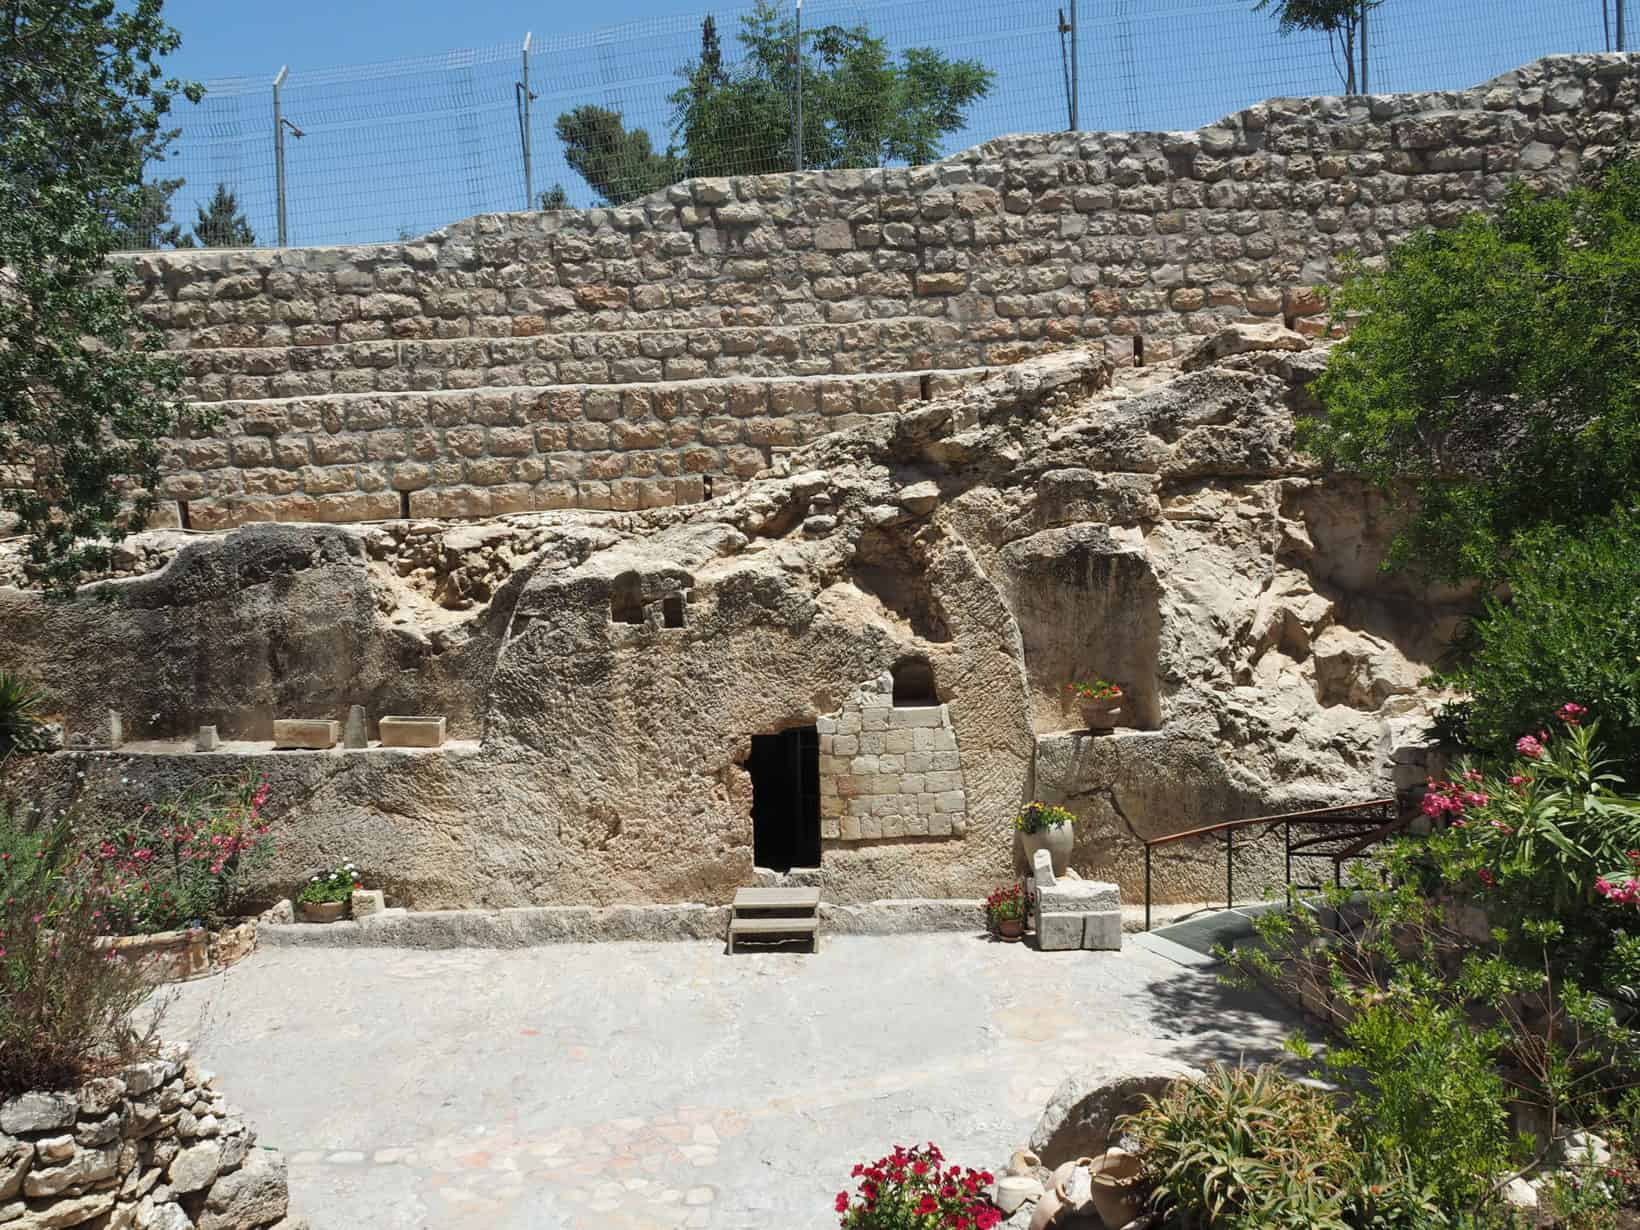 The Empty Garden Tomb in Jerusalem